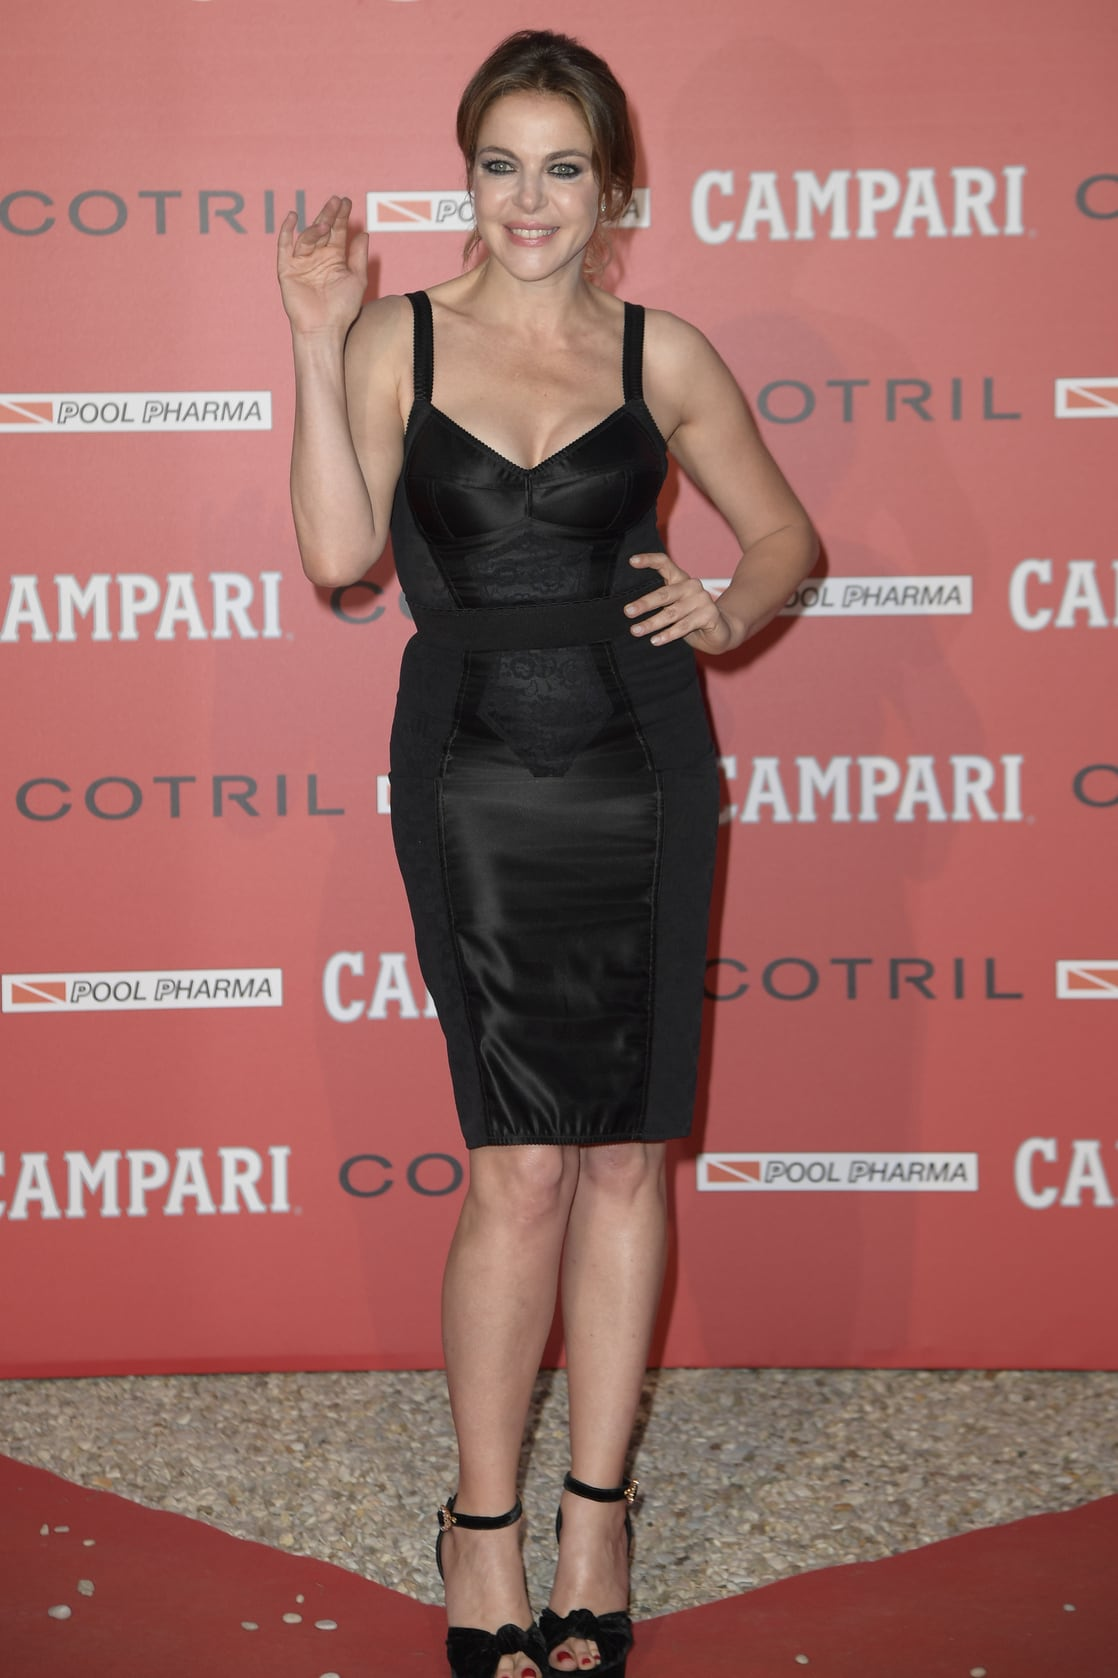 Claudia Gerini (born 1971)